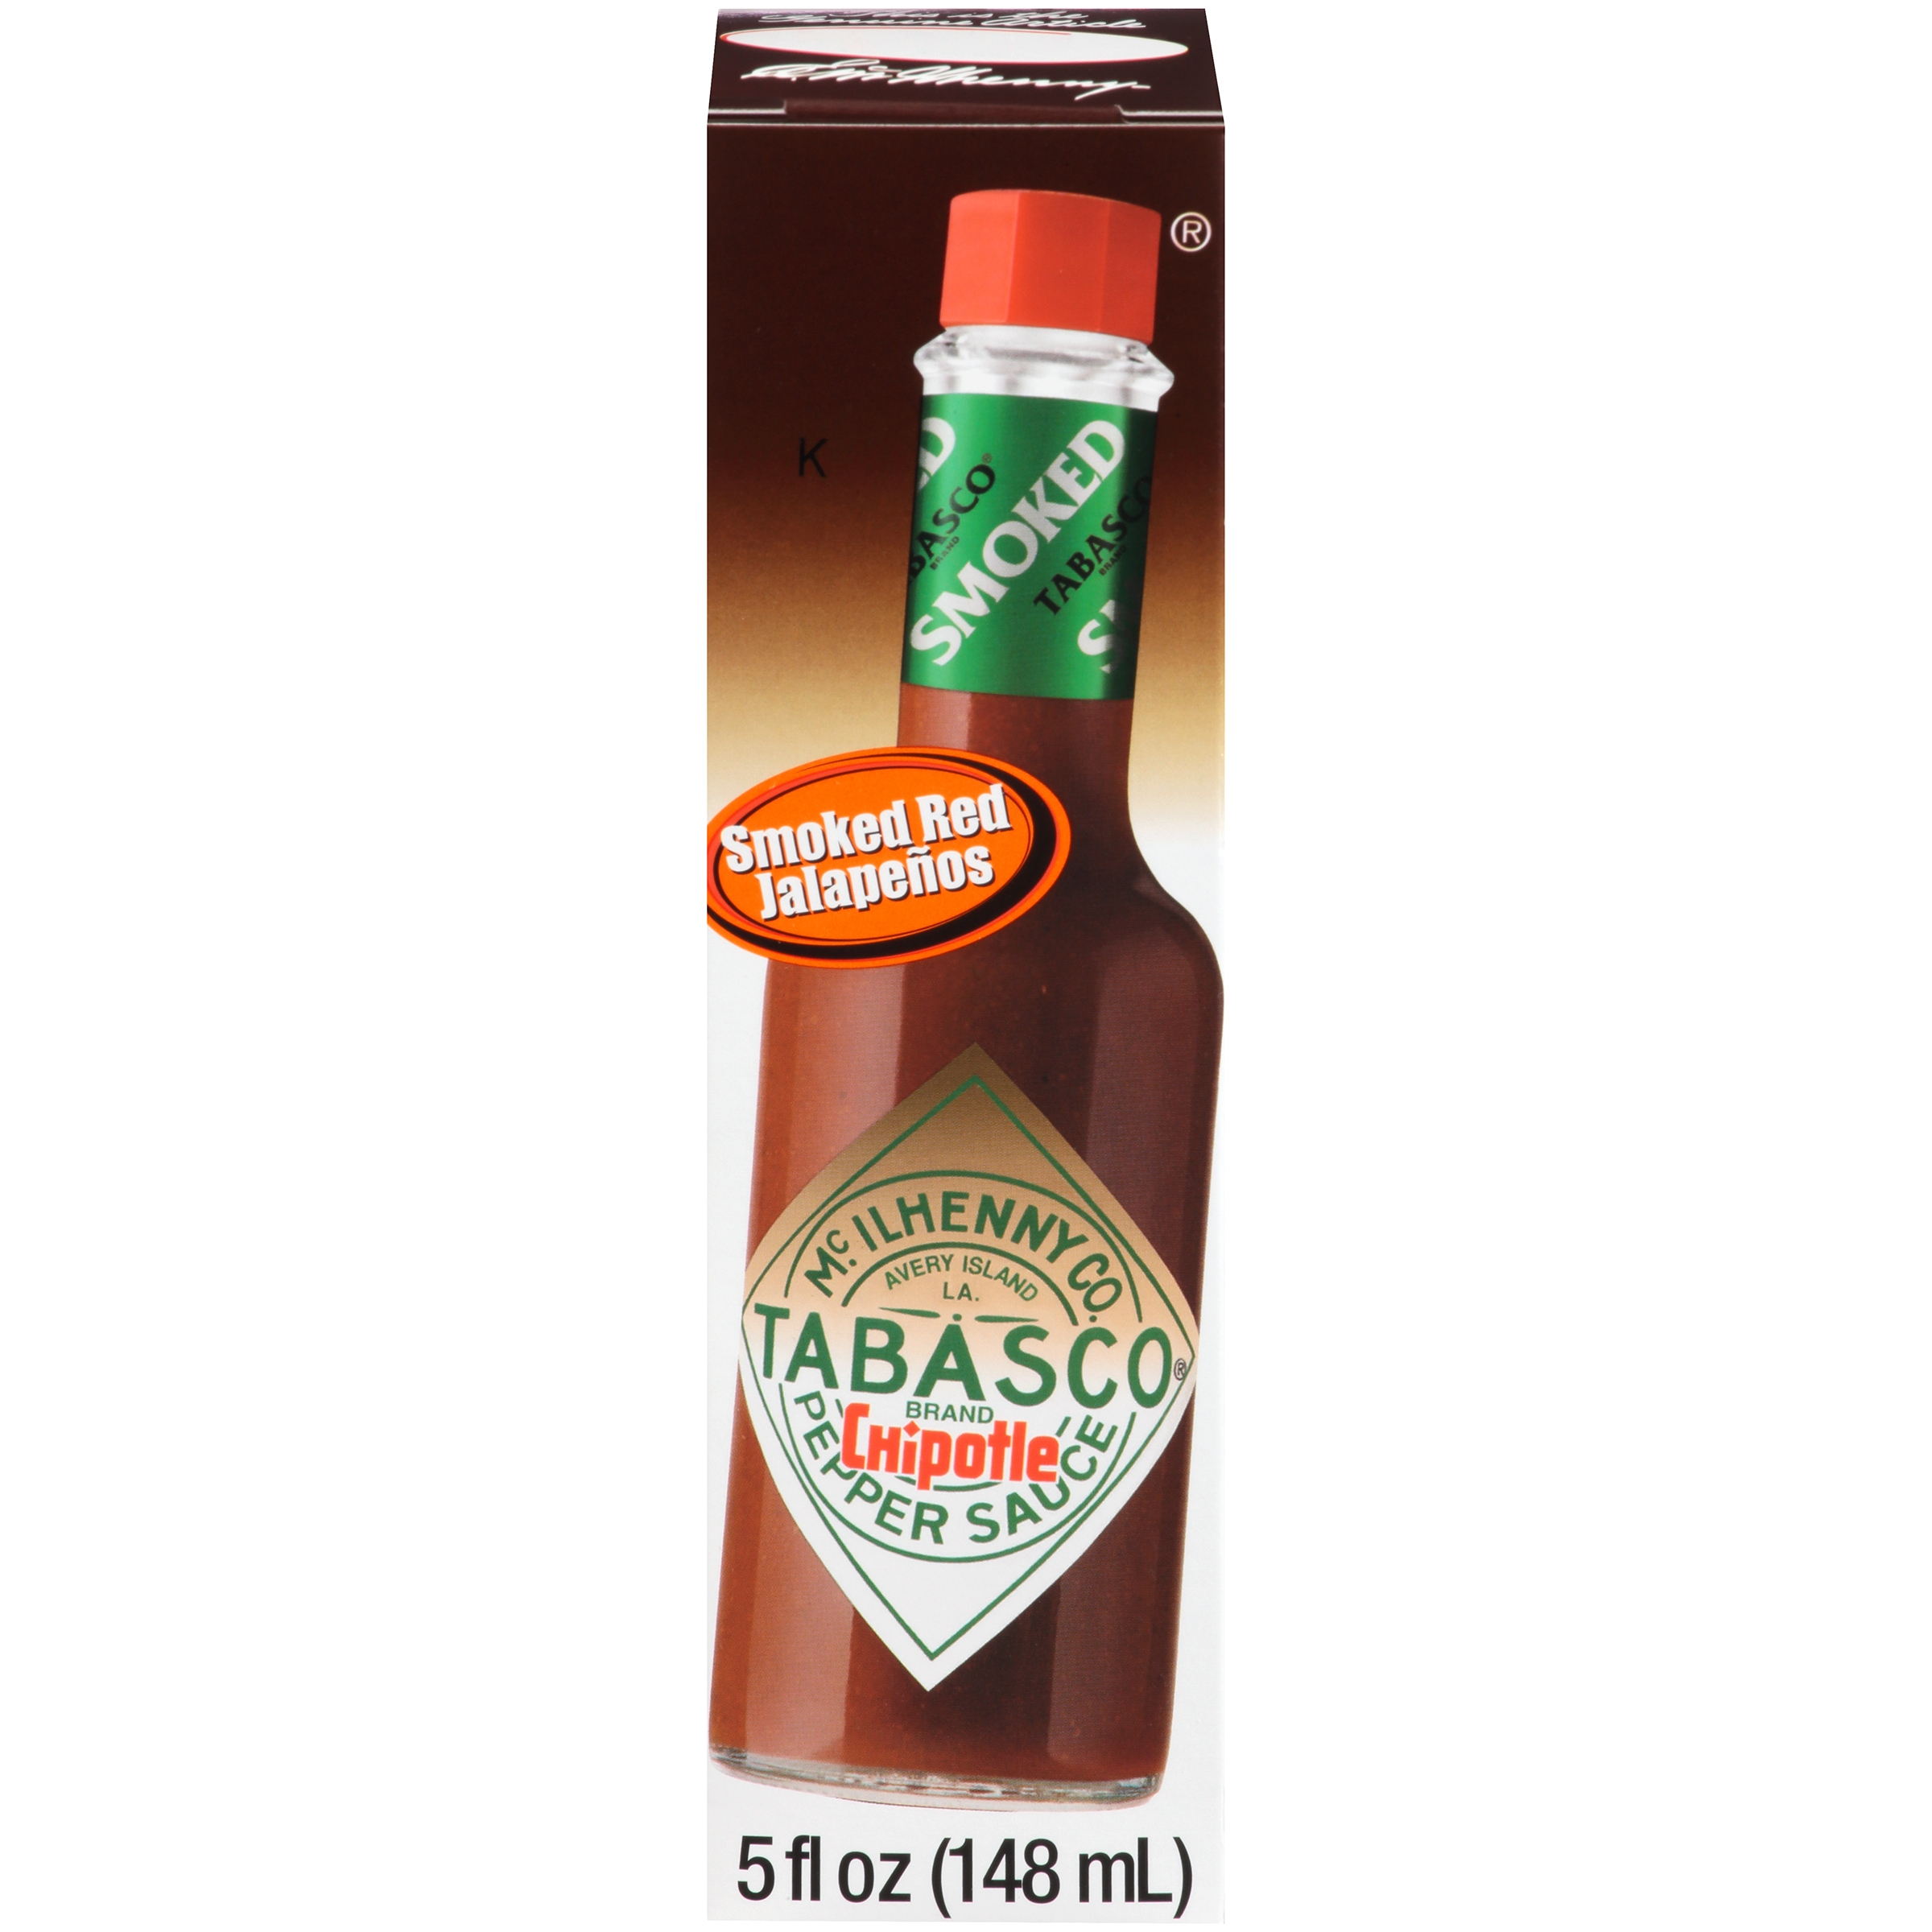 Tabasco® Smoked Red Jalapeños Chipotle Pepper Sauce 5 fl. oz. Box